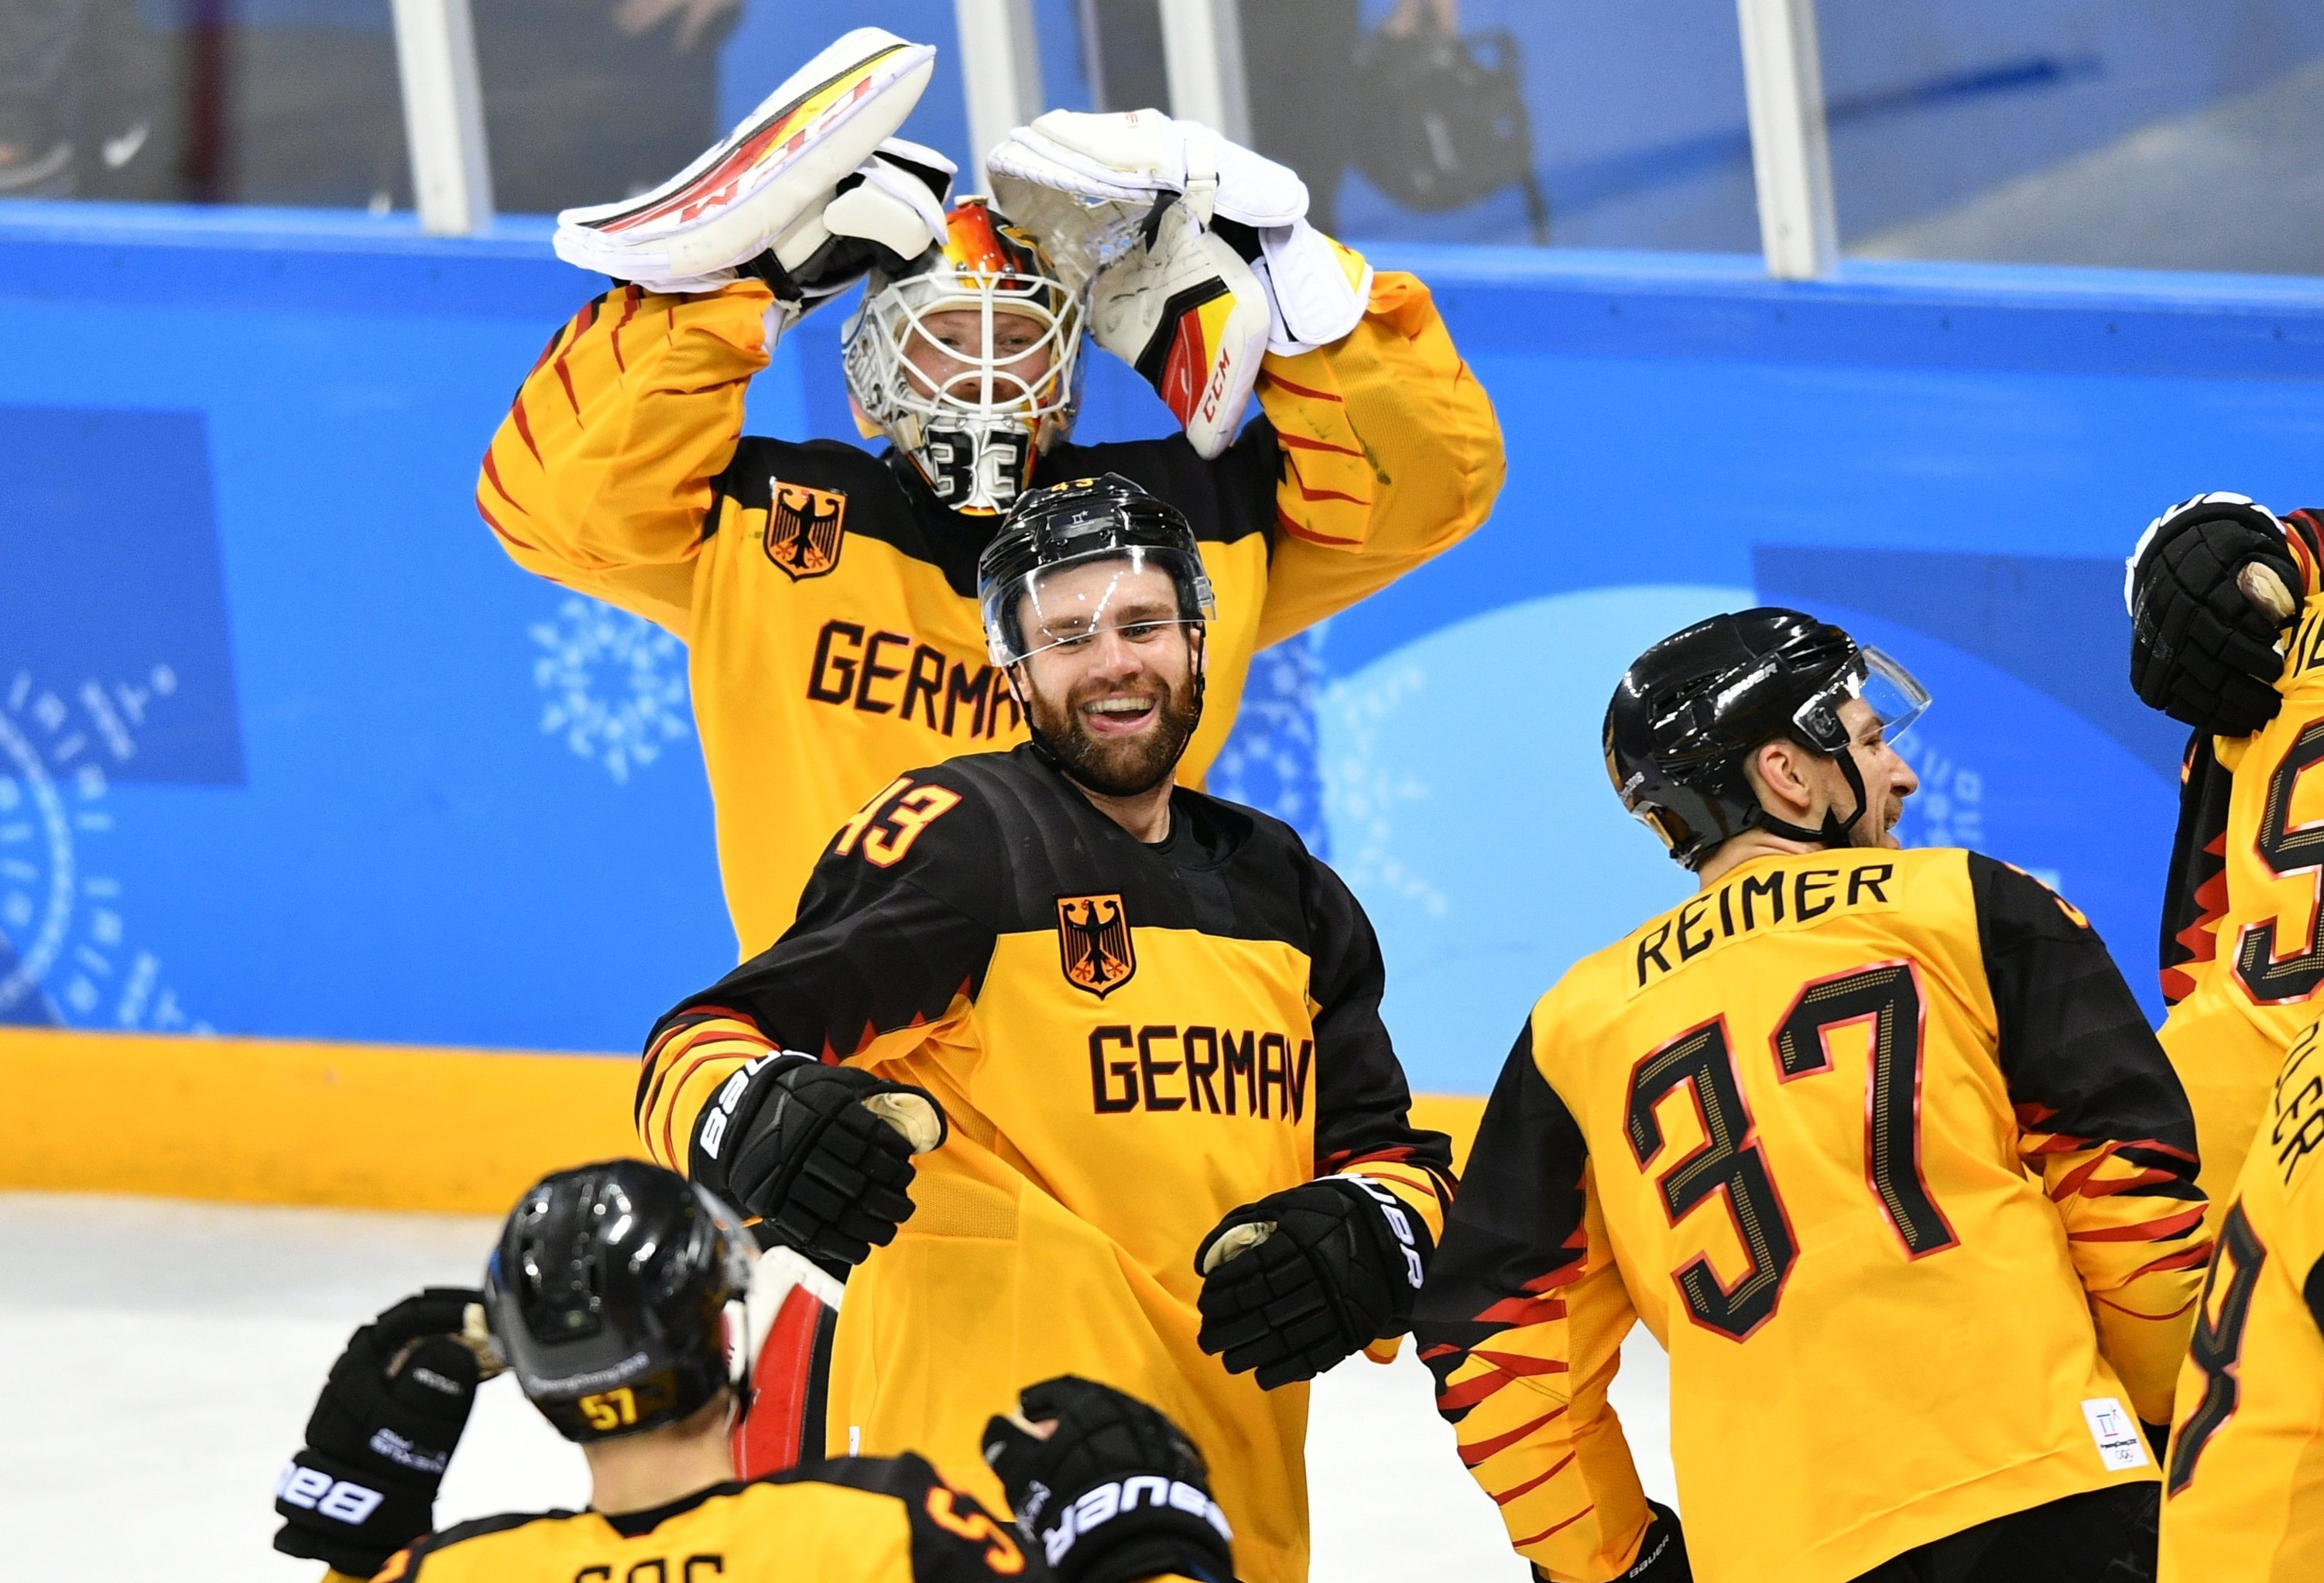 Germany's hockey players celebrate their victory in the semifinals between the Canada and Germany national teams in the men's ice hockey tournament, at the XXIII Olympic Winter Games